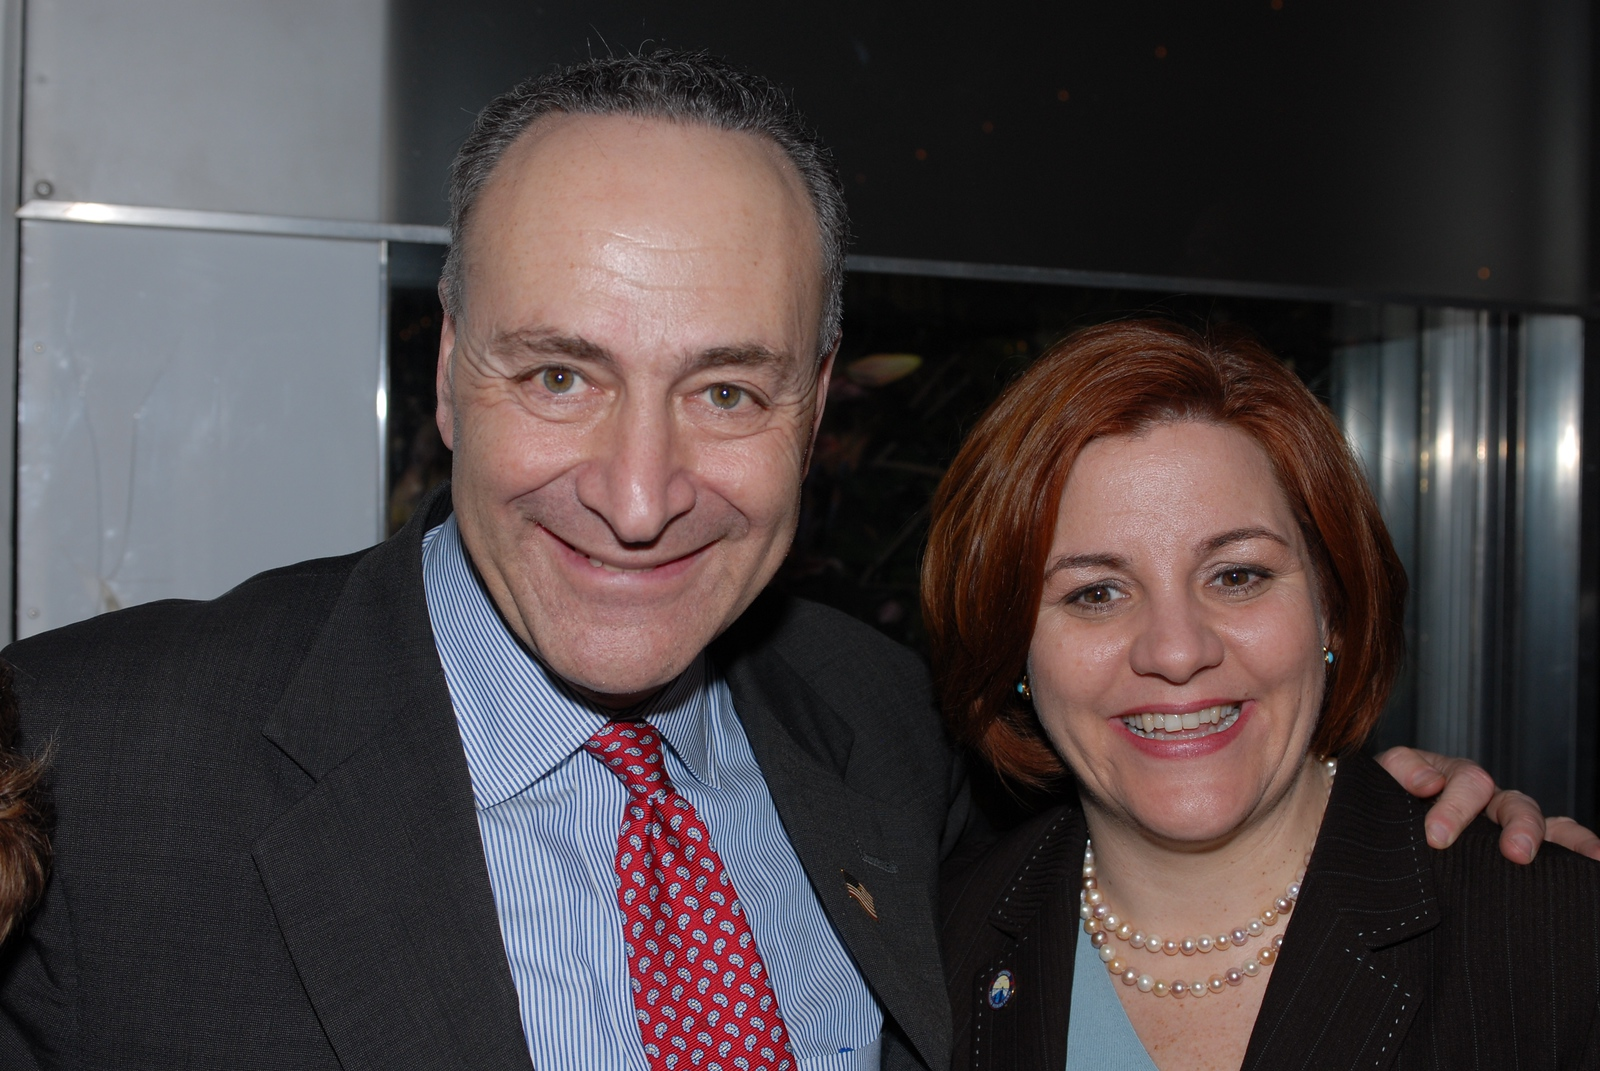 BSC_7103 US Senator Chuck Schumer and NYC Council Speaker Christine Quinn 02-21-2007